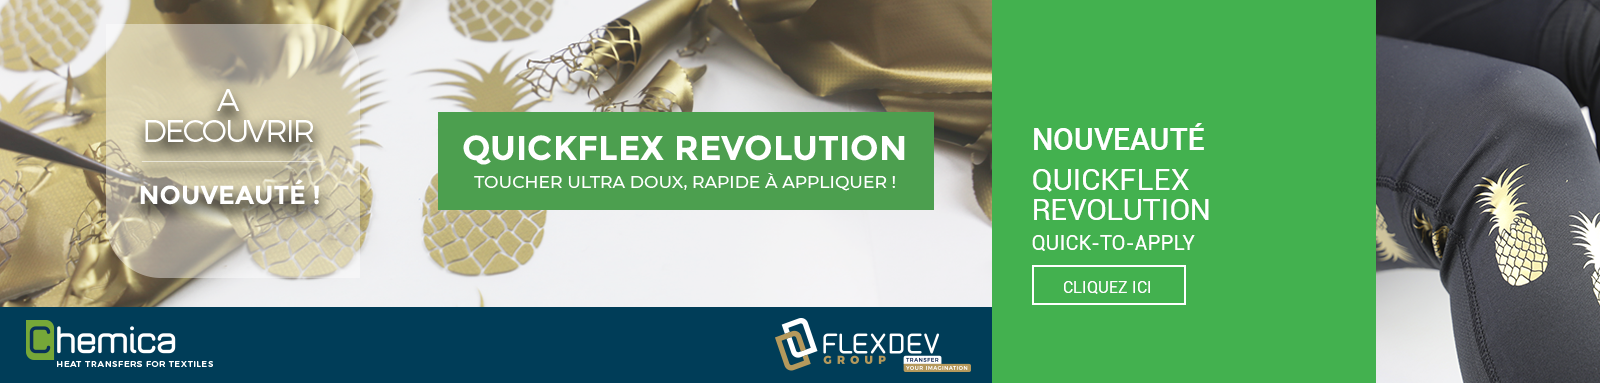 QuickFlex Revolution